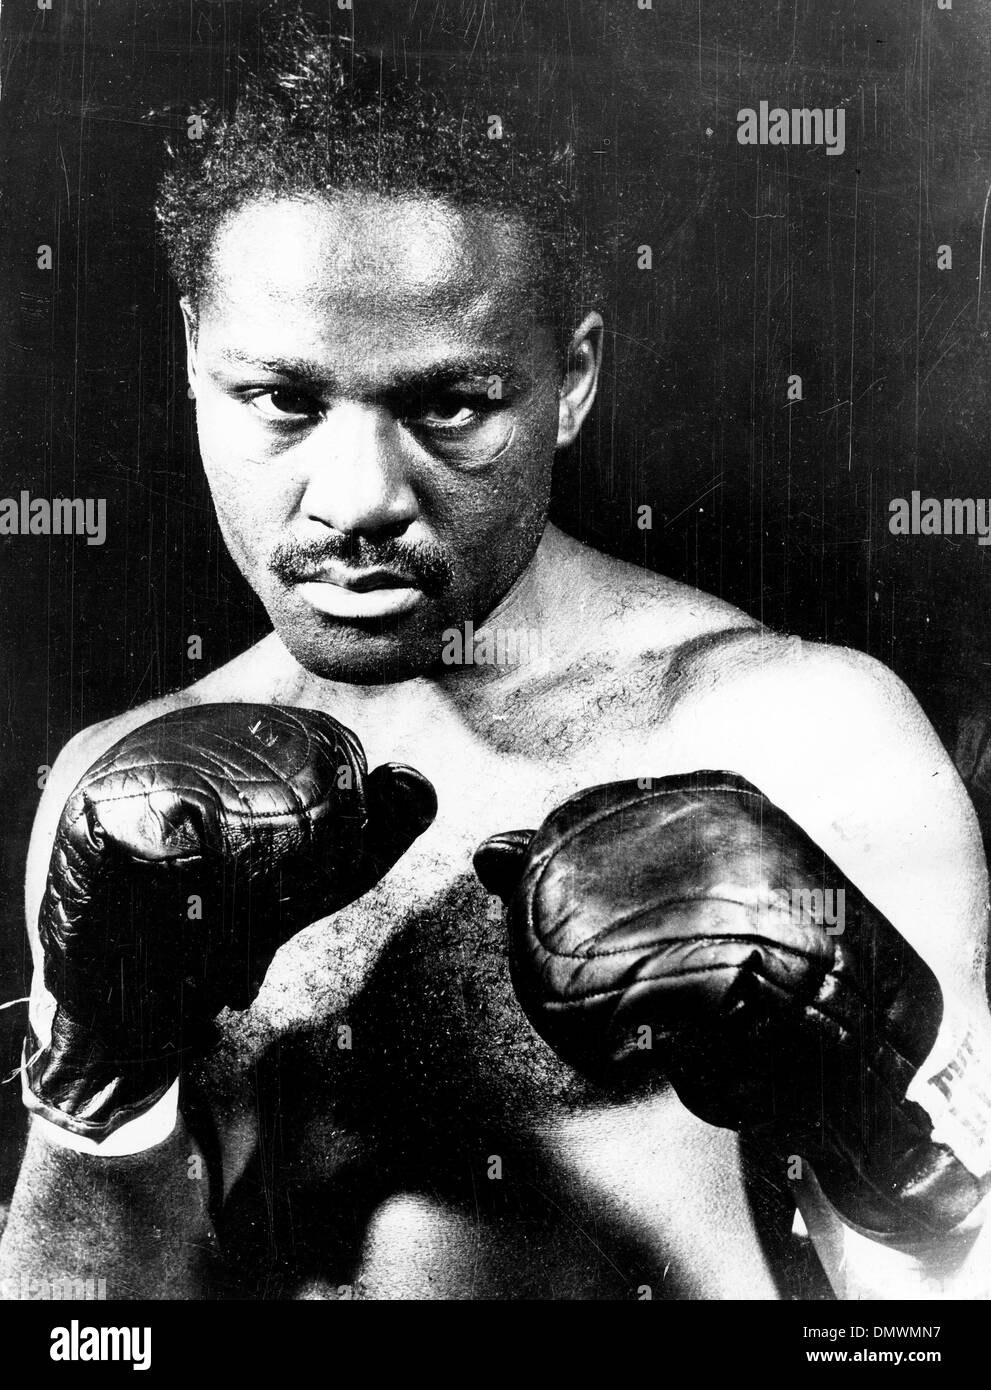 June 1, 1949 - New York, New York, U.S. - EZZARD CHARLES was an African-American professional boxer and former Heavyweight Champion of the world. PICTURED: Portrait of Ezzard before a match. (Credit Image: © KEYSTONE Pictures USA/ZUMAPRESS.com) - Stock Image